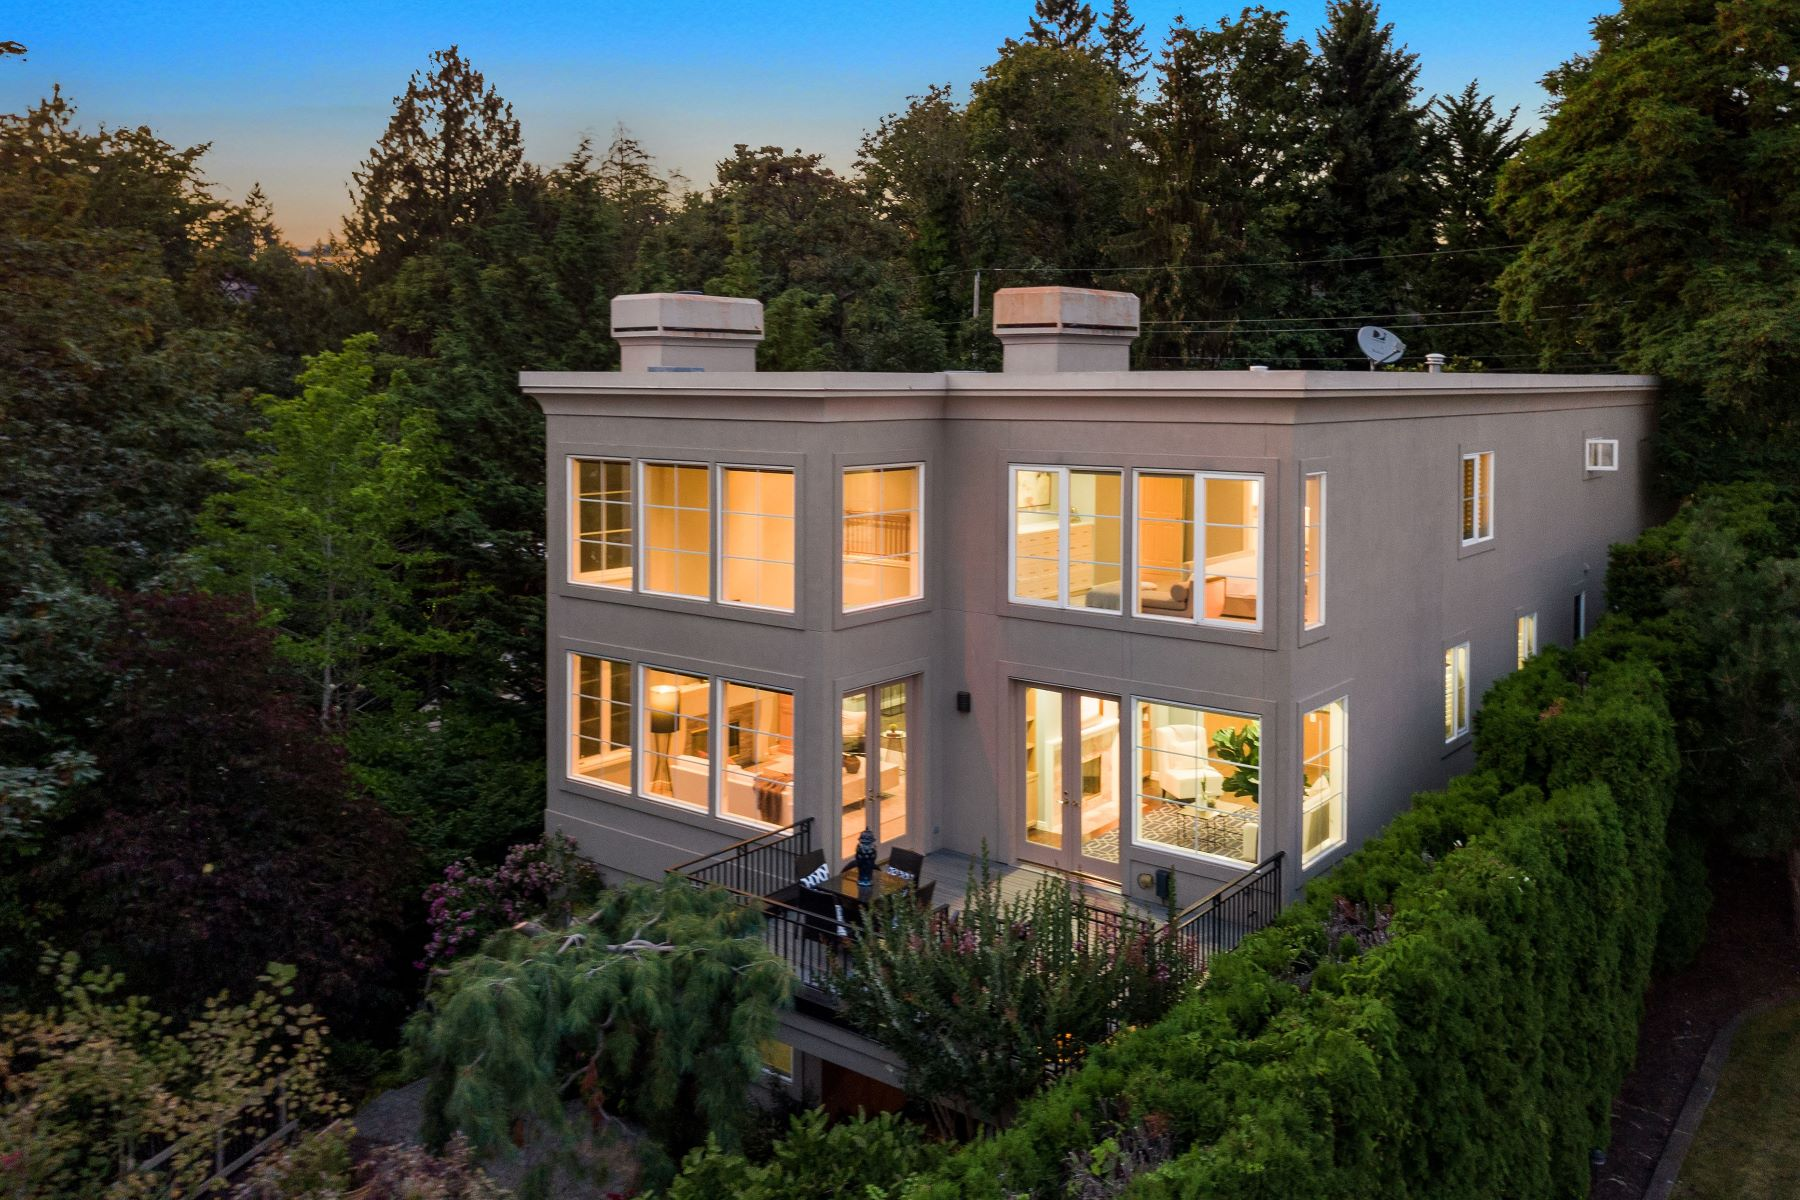 Single Family Homes for Sale at 9741 Northeast 1st Street, Bellevue, WA 98004 9741 Northeast 1st Street Bellevue, Washington 98004 United States